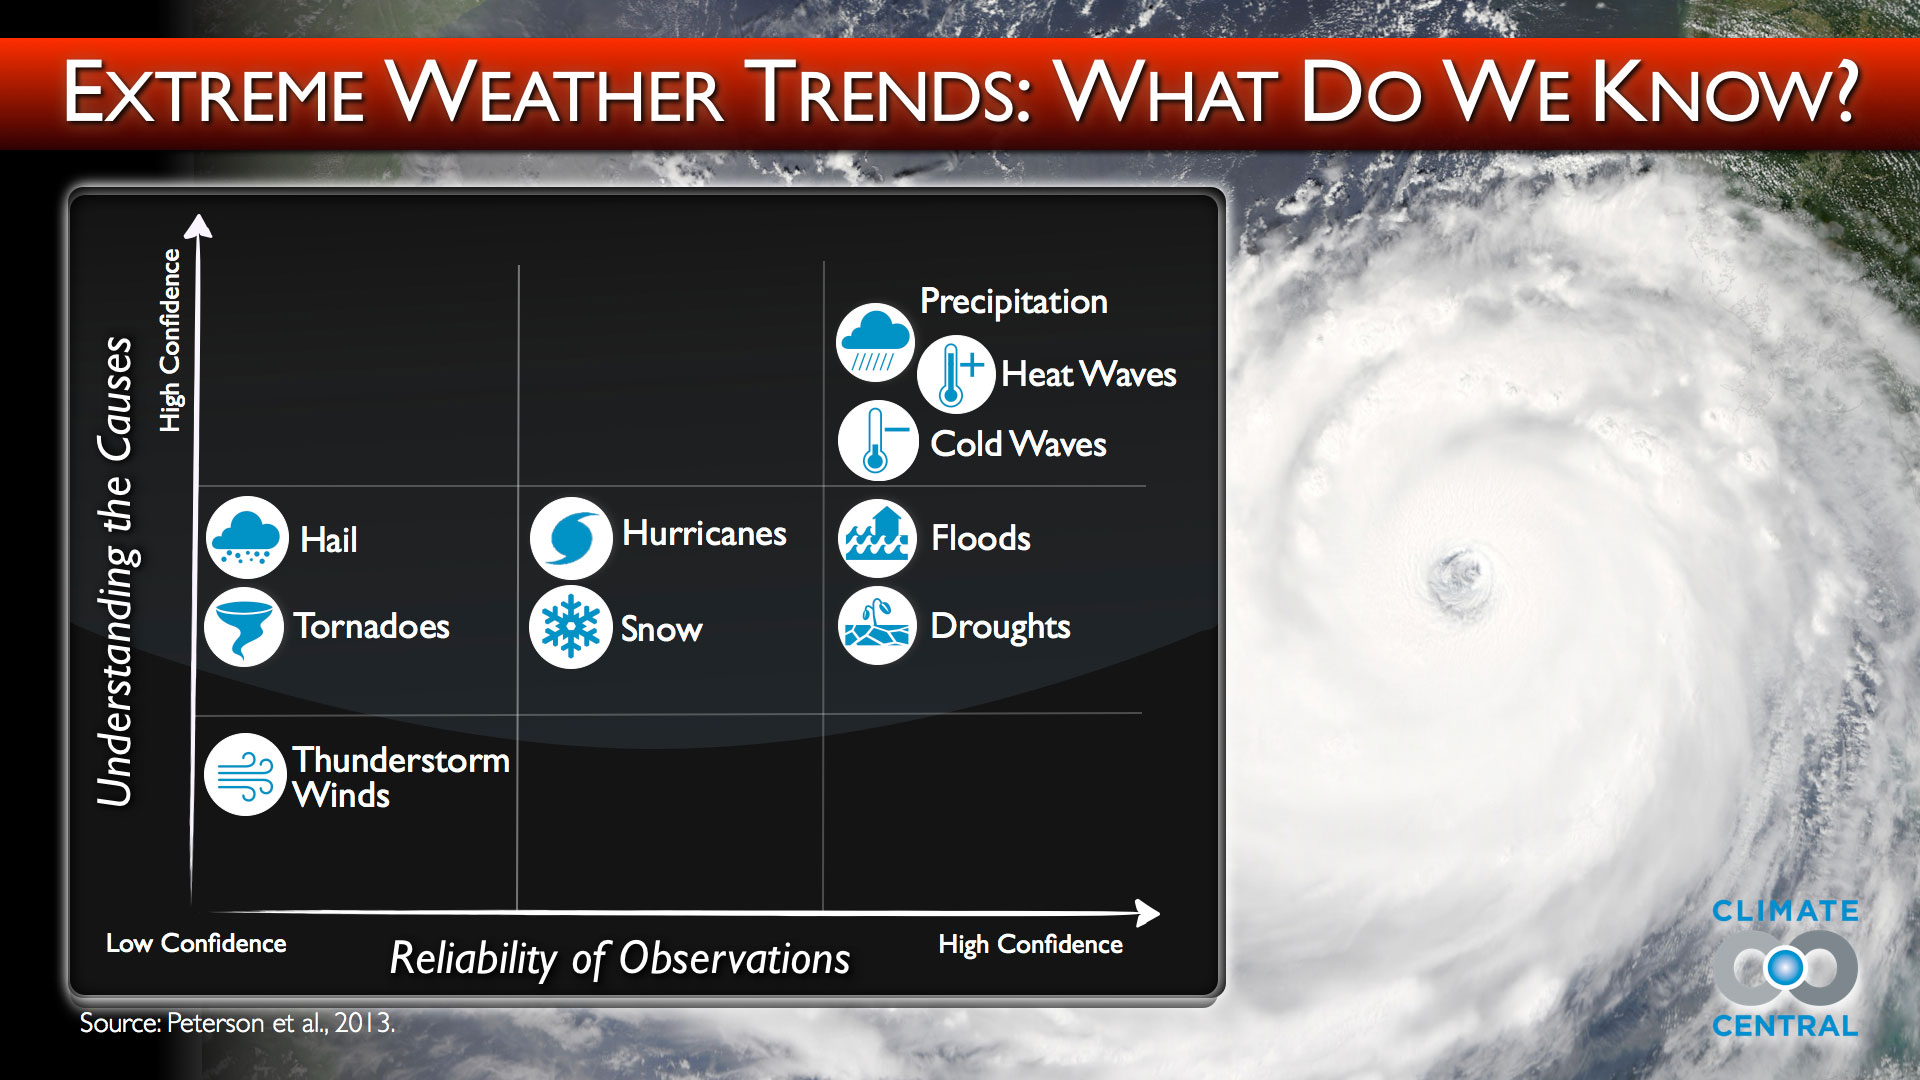 Extreme Weather Trends: What Do We Know?